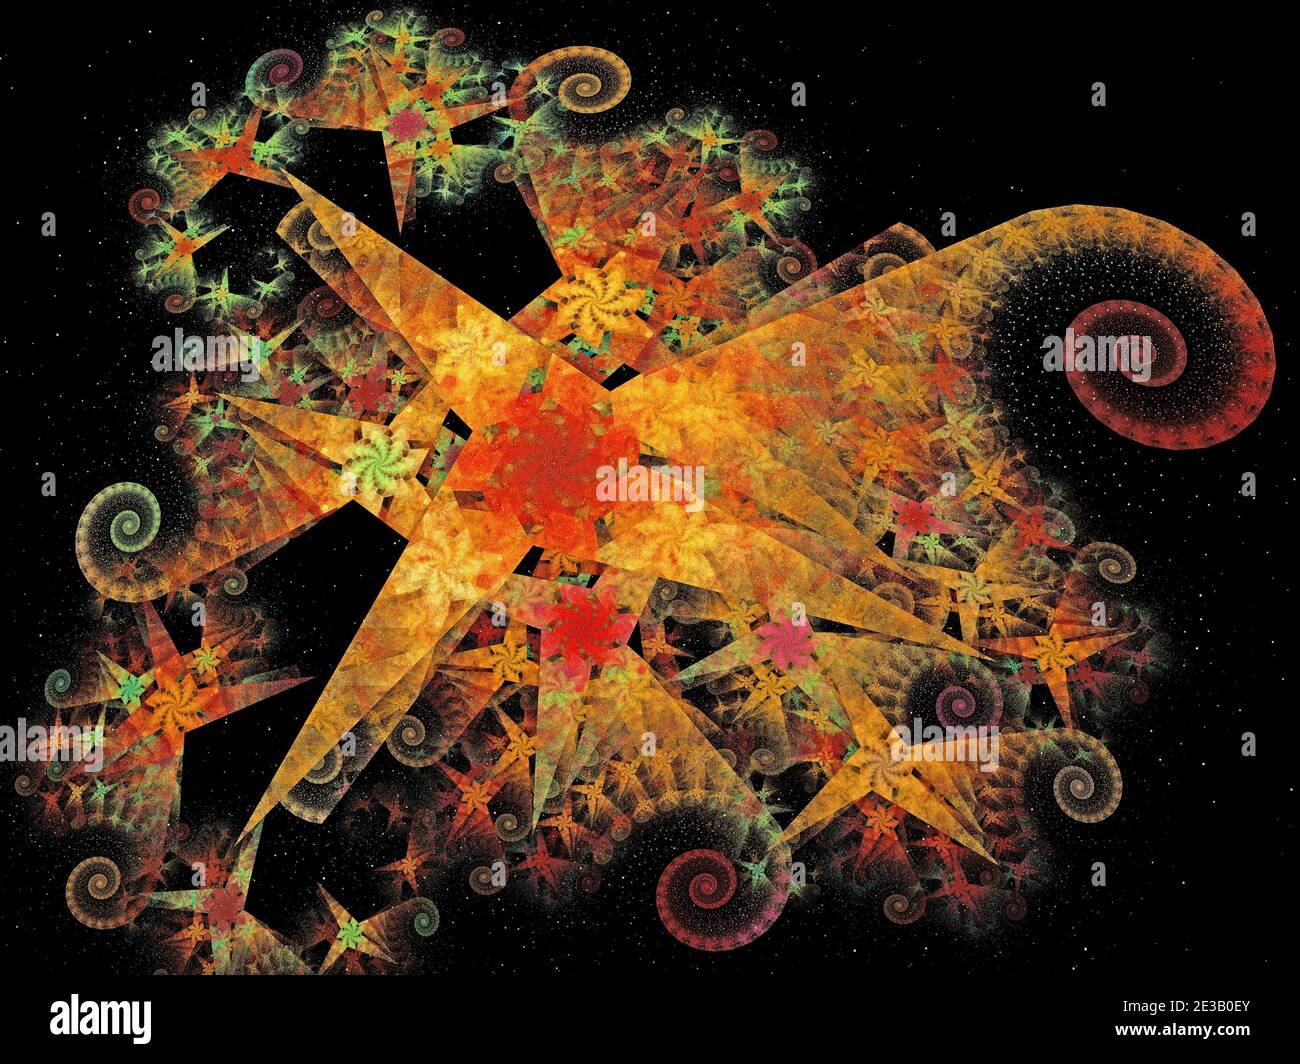 Colourful Spiraling Sparkly Design Stock Photo